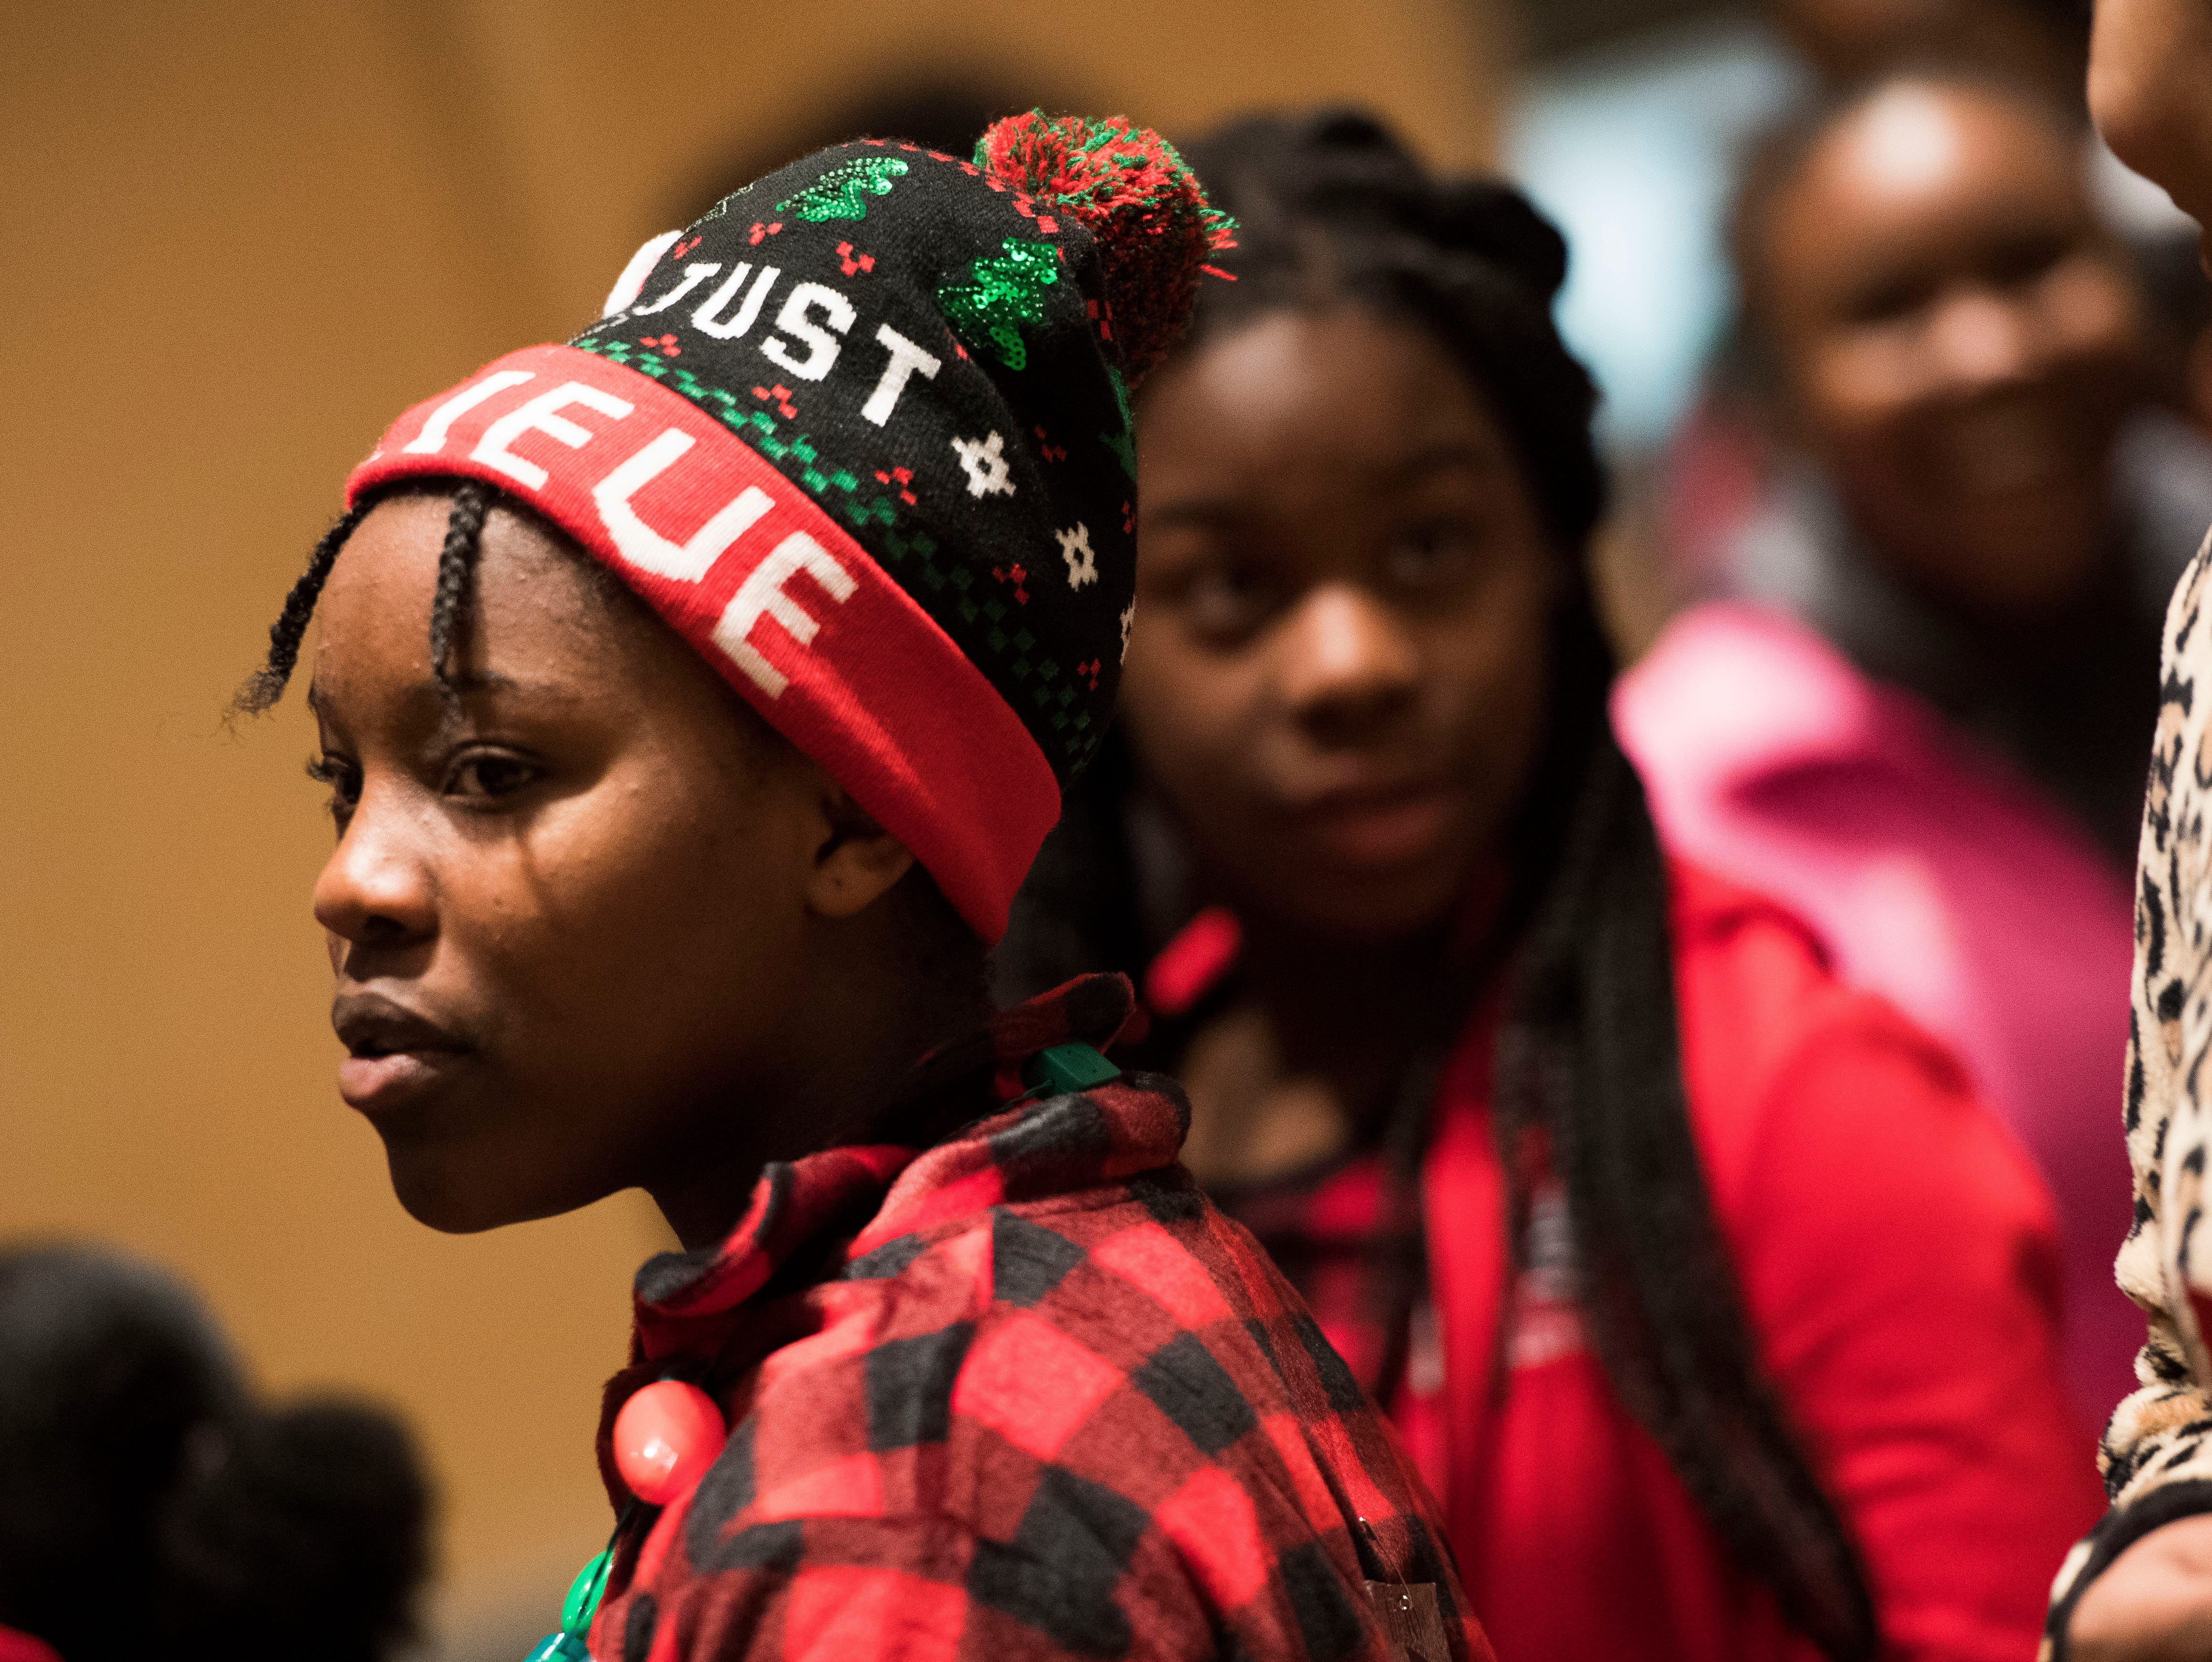 Maria Nshimirimana, 13,stands at the Big Brothers Big Sisters annual holiday party at the Crowne Plaza Saturday, Dec. 1, 2018. Nearly 300 mentors, mentees and family members were in attendance.